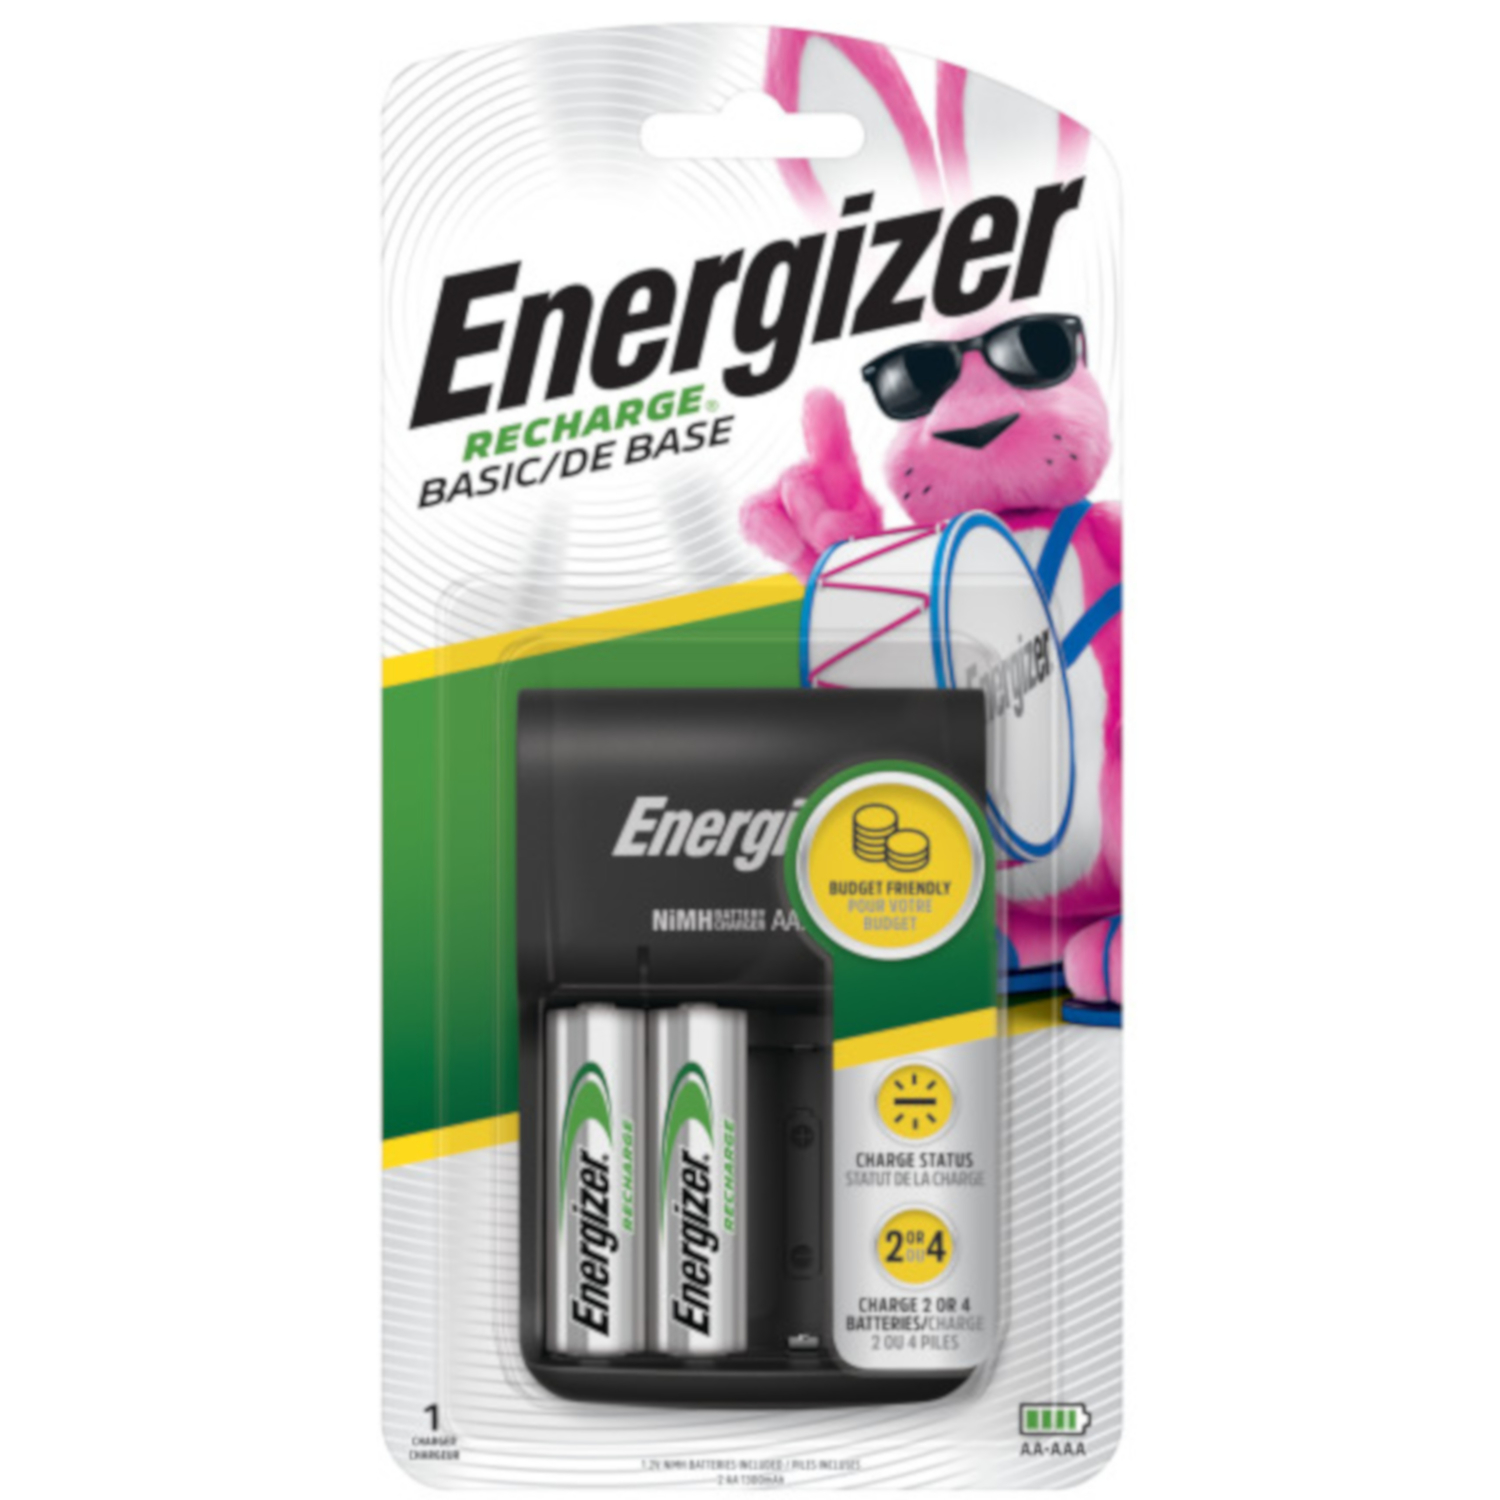 Energizer Rechargable Battery Charger Multiple Size 2 or 4 AA Batteries 2,000 mAh